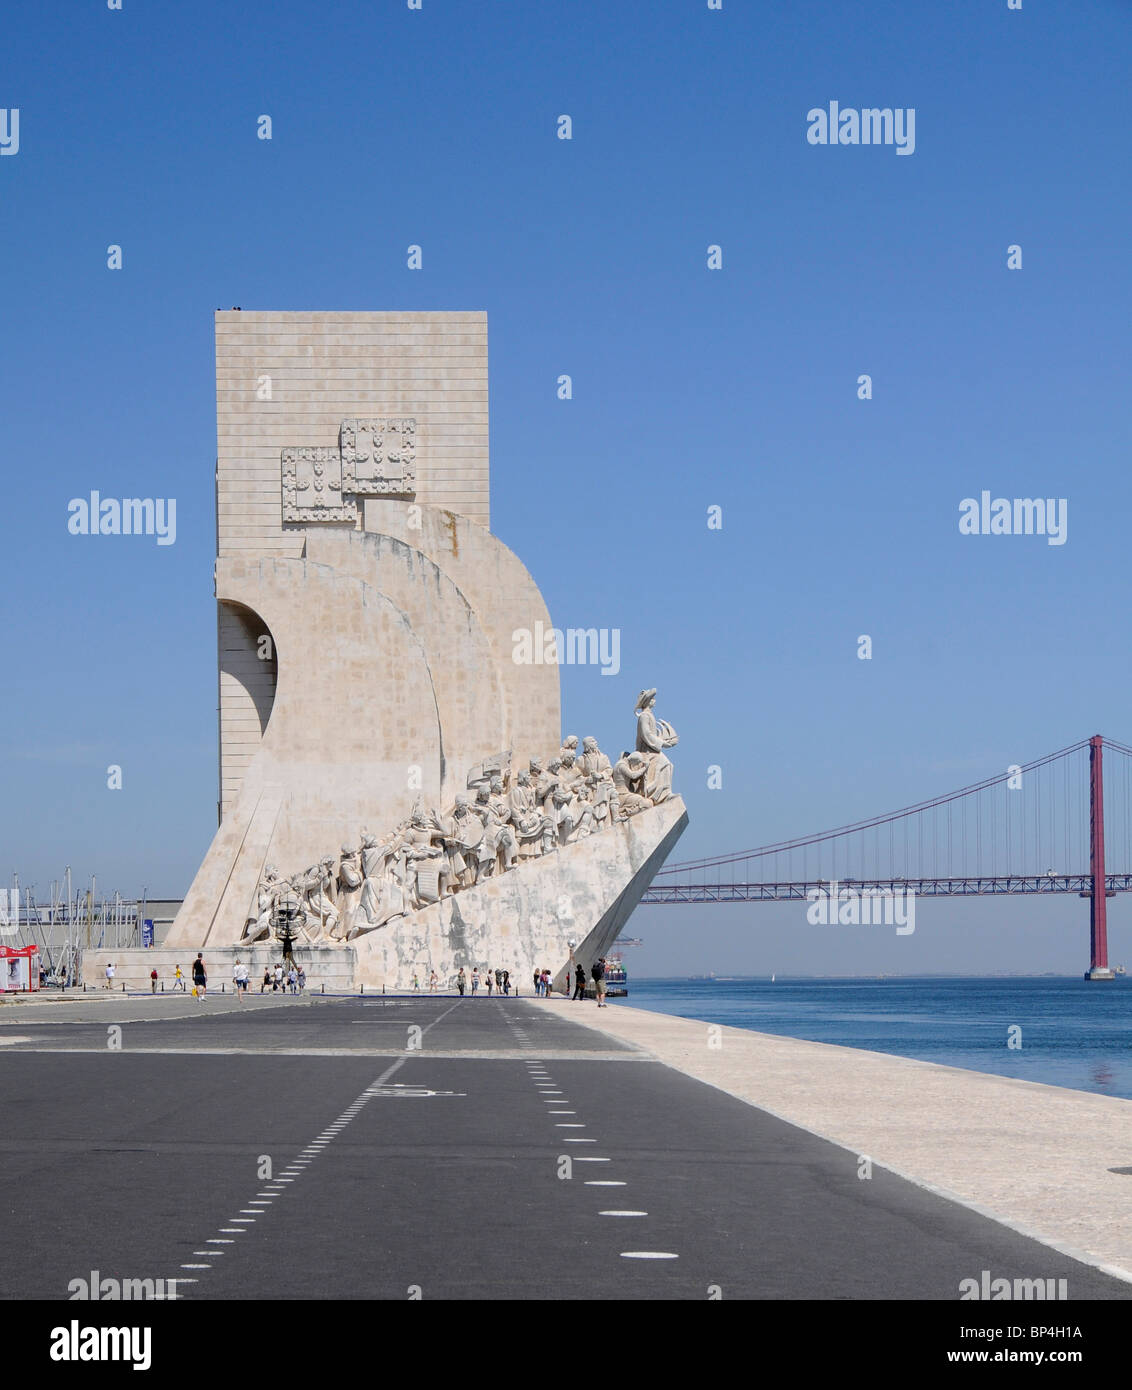 Monument to the Discoveries (Padrao dos Descobrimentos) showing Portuguese explorers in the Belem  district of Lisbon, - Stock Image